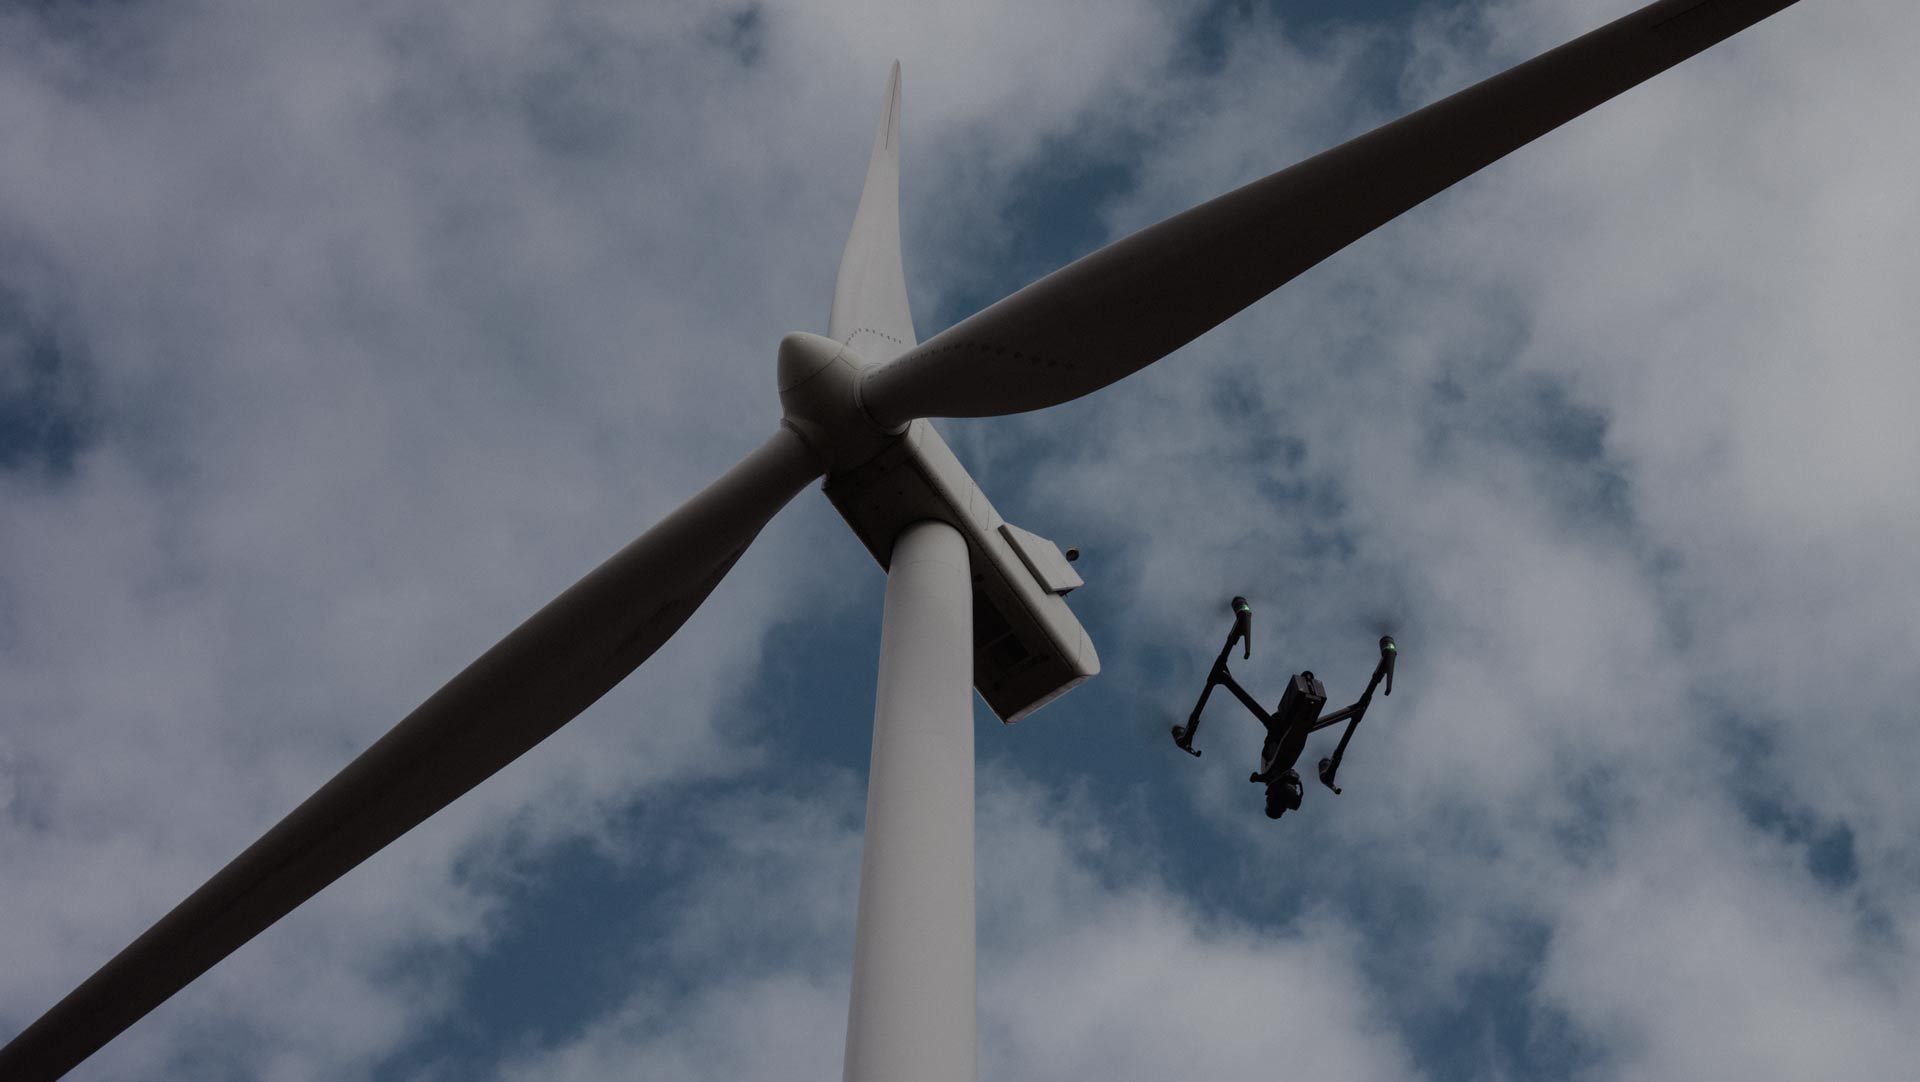 DJI Inspire 2 hovering infront of a wind turbine